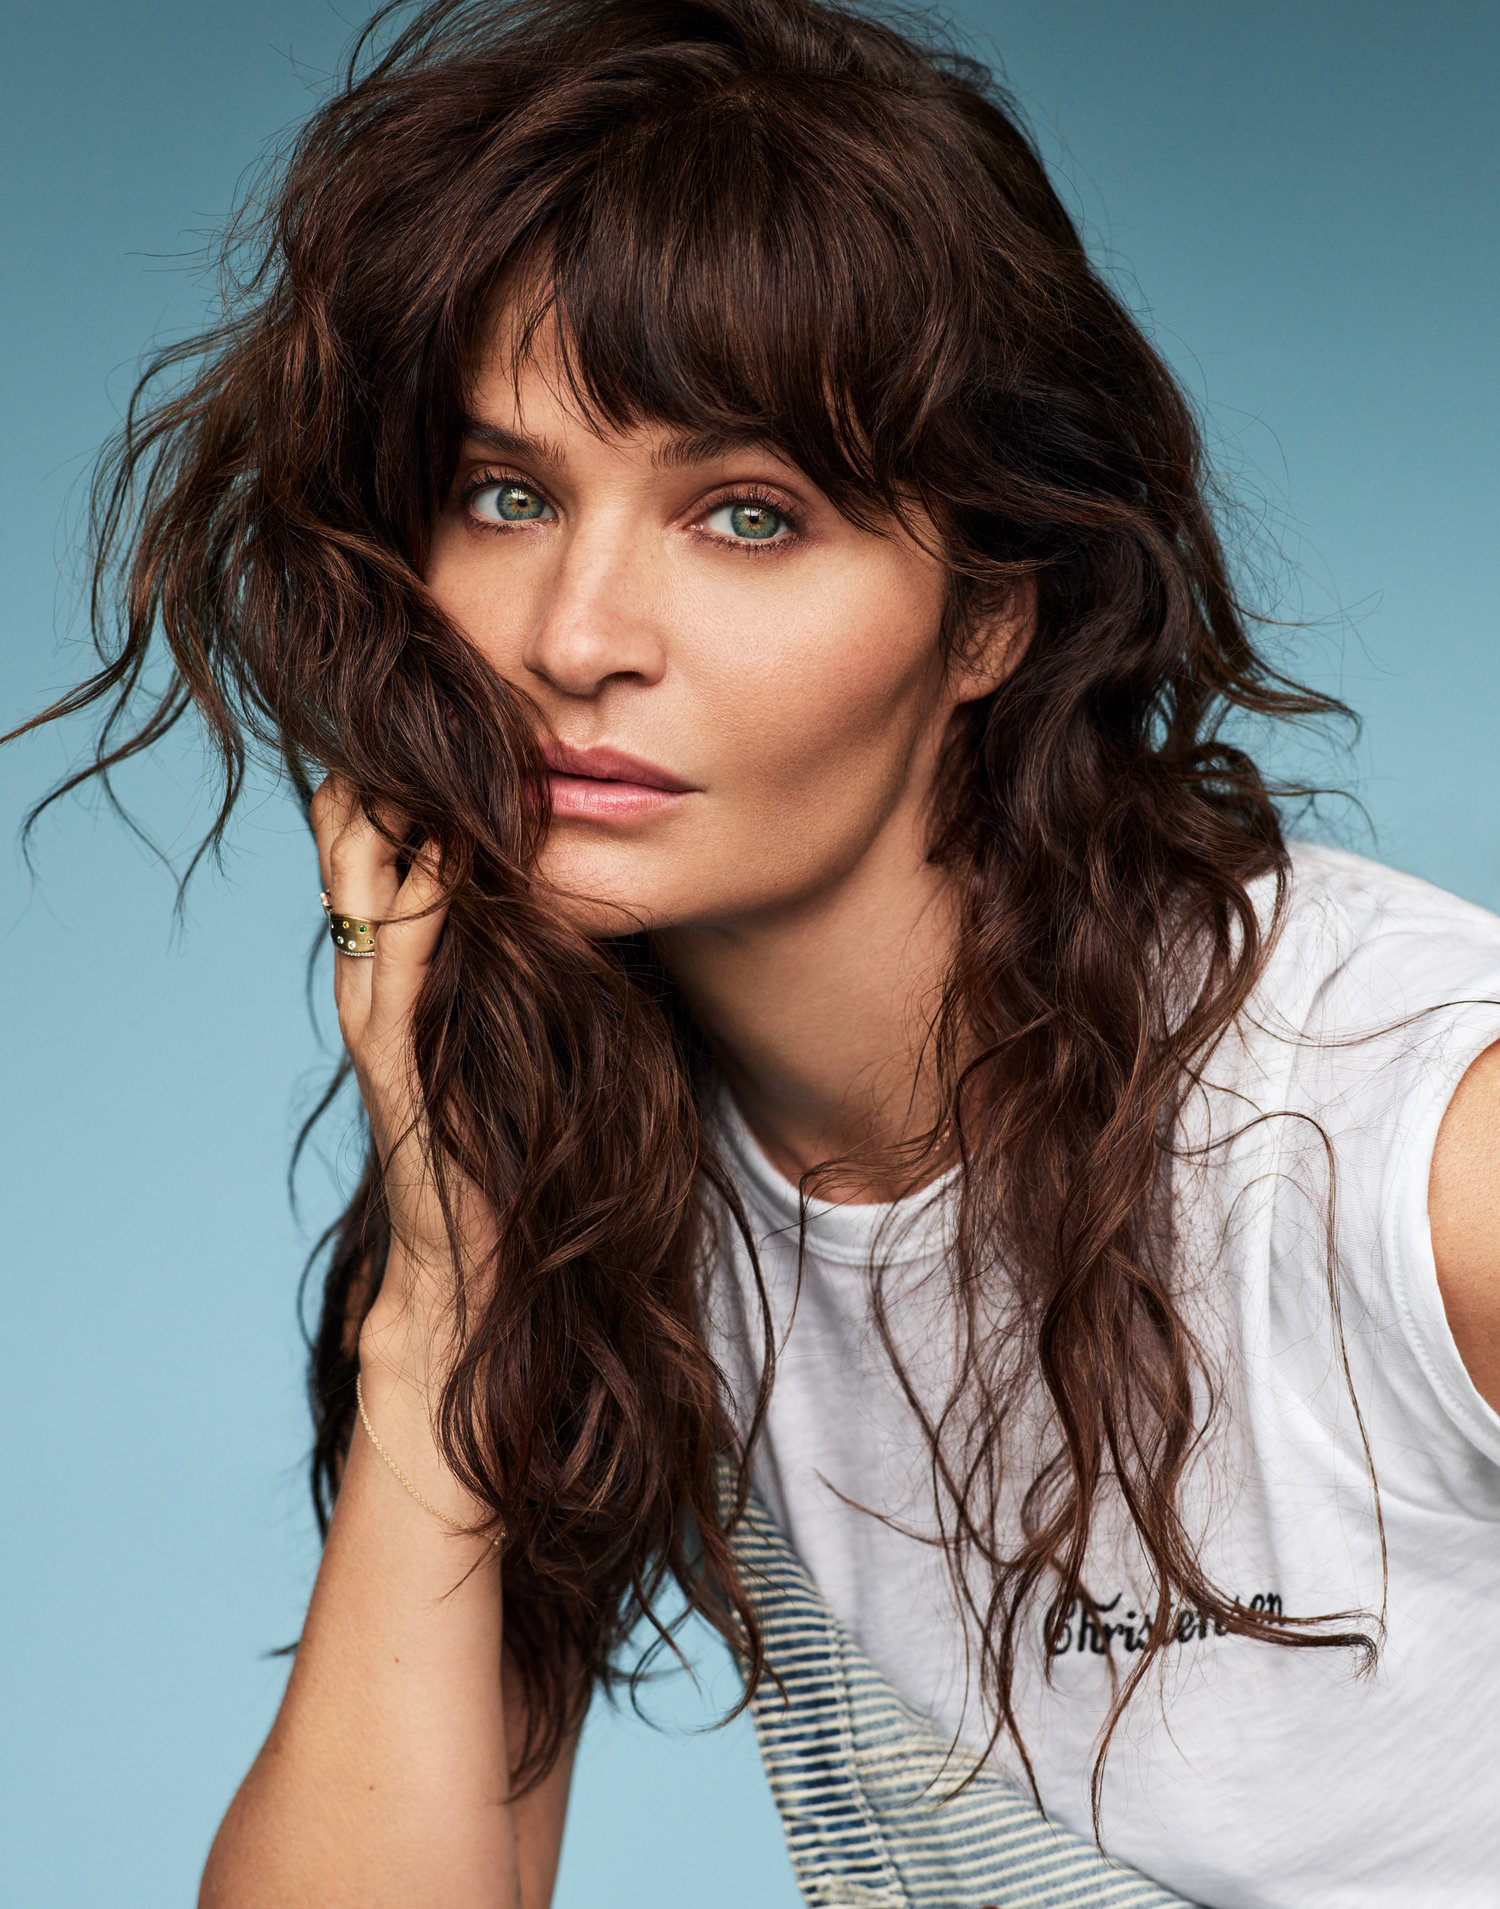 Helena Christensen Beauty Pics - Helena Christensen Beauty Pics